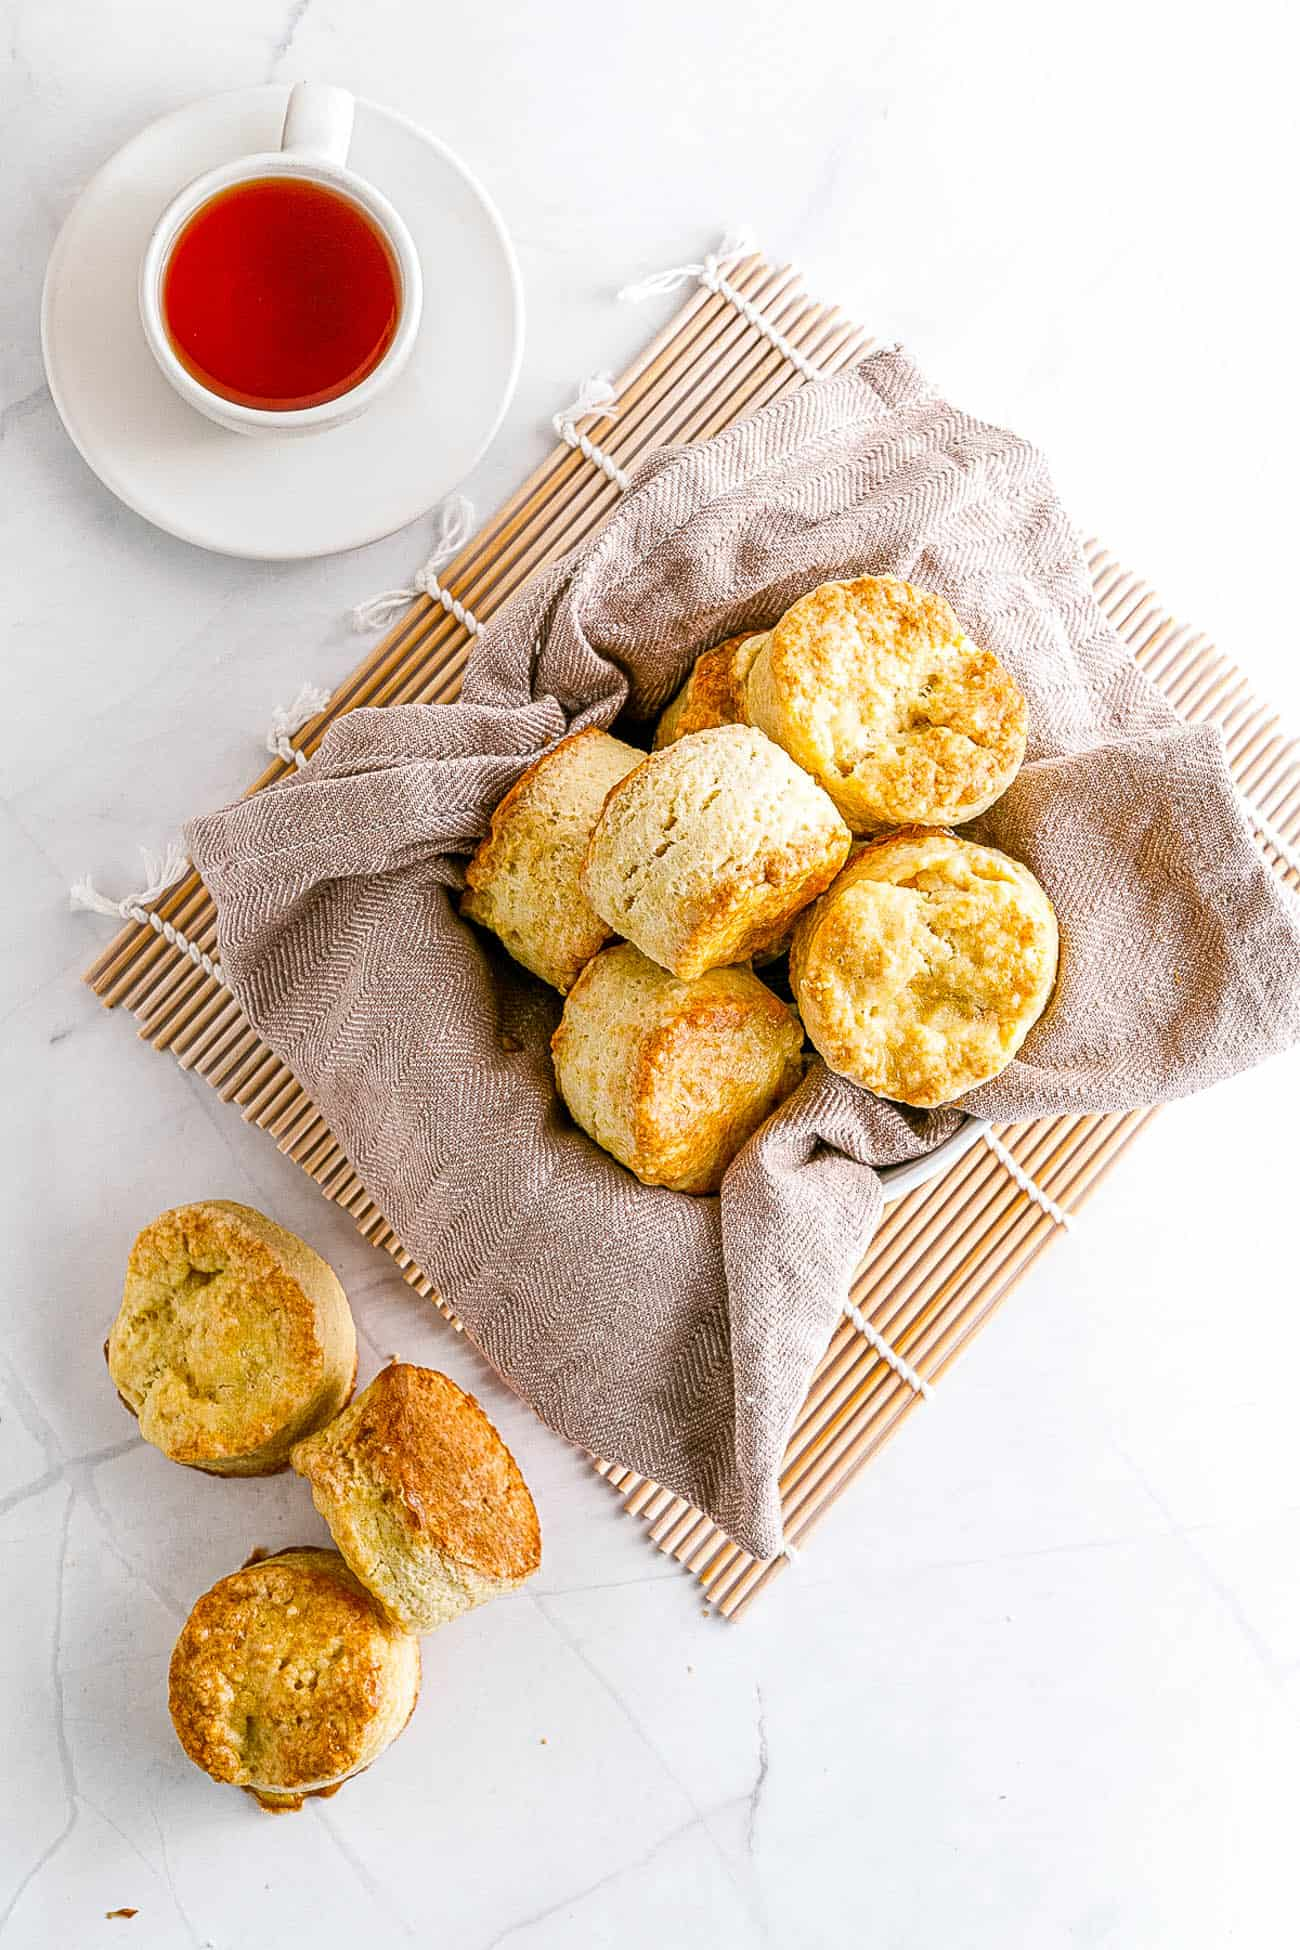 Easy Biscuit Recipe without Baking Powder - biscuits stacked in a bowl and on top of each other